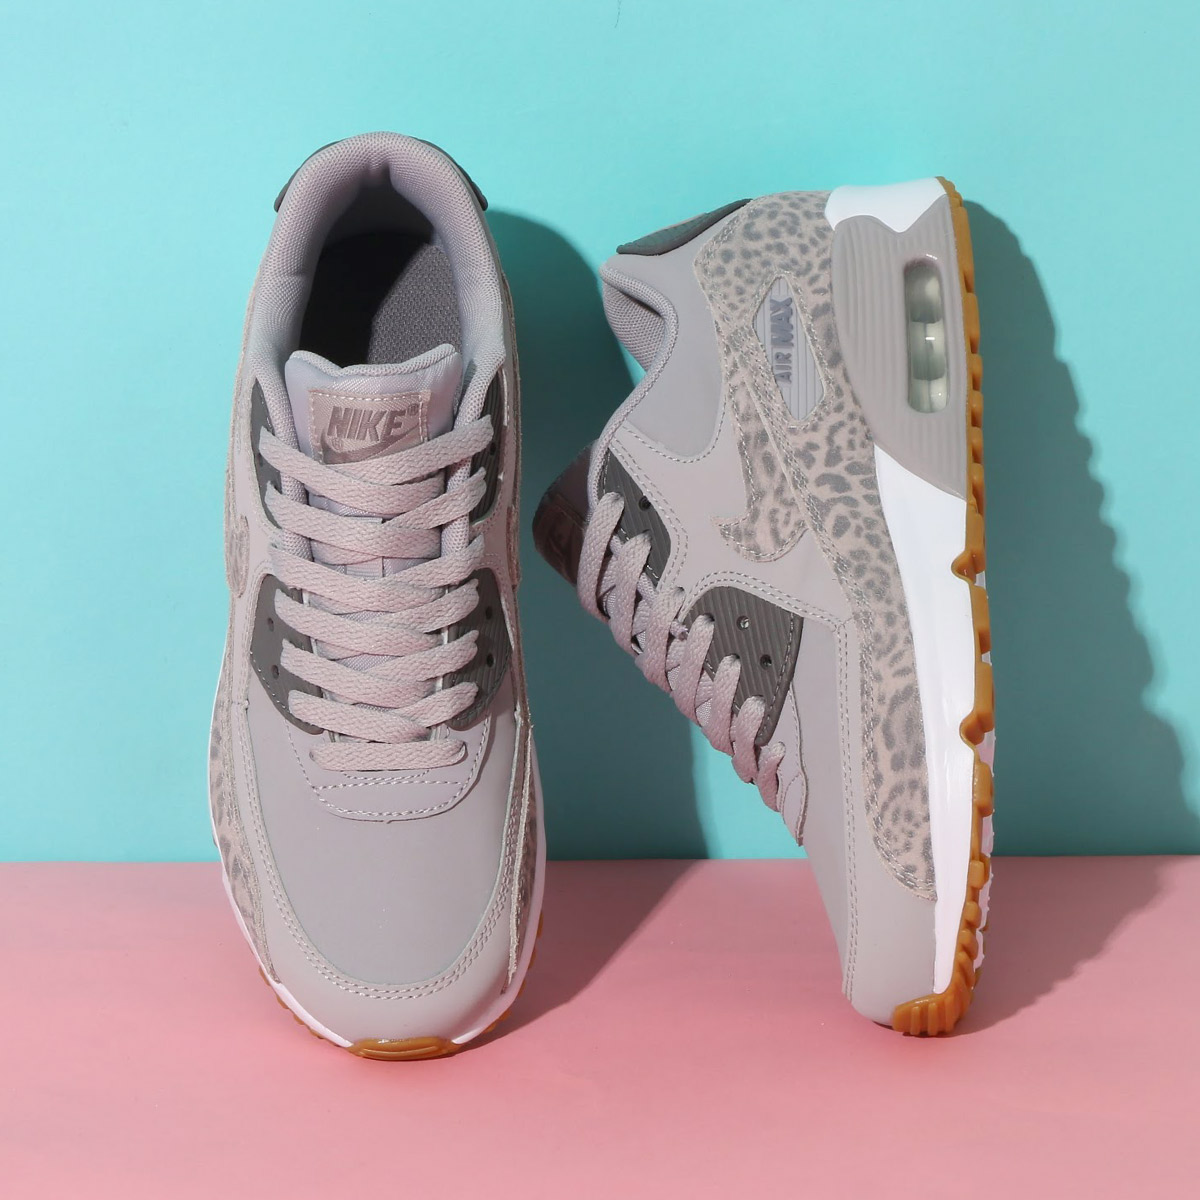 atmos pink  NIKE AIR MAX 90 LTR SE GG (Kie Ney AMAX 90 leather SE GS)  (ATMOSPHERE GREY GUNSMOKE-WHITE) 18SP-I  eced2249863d